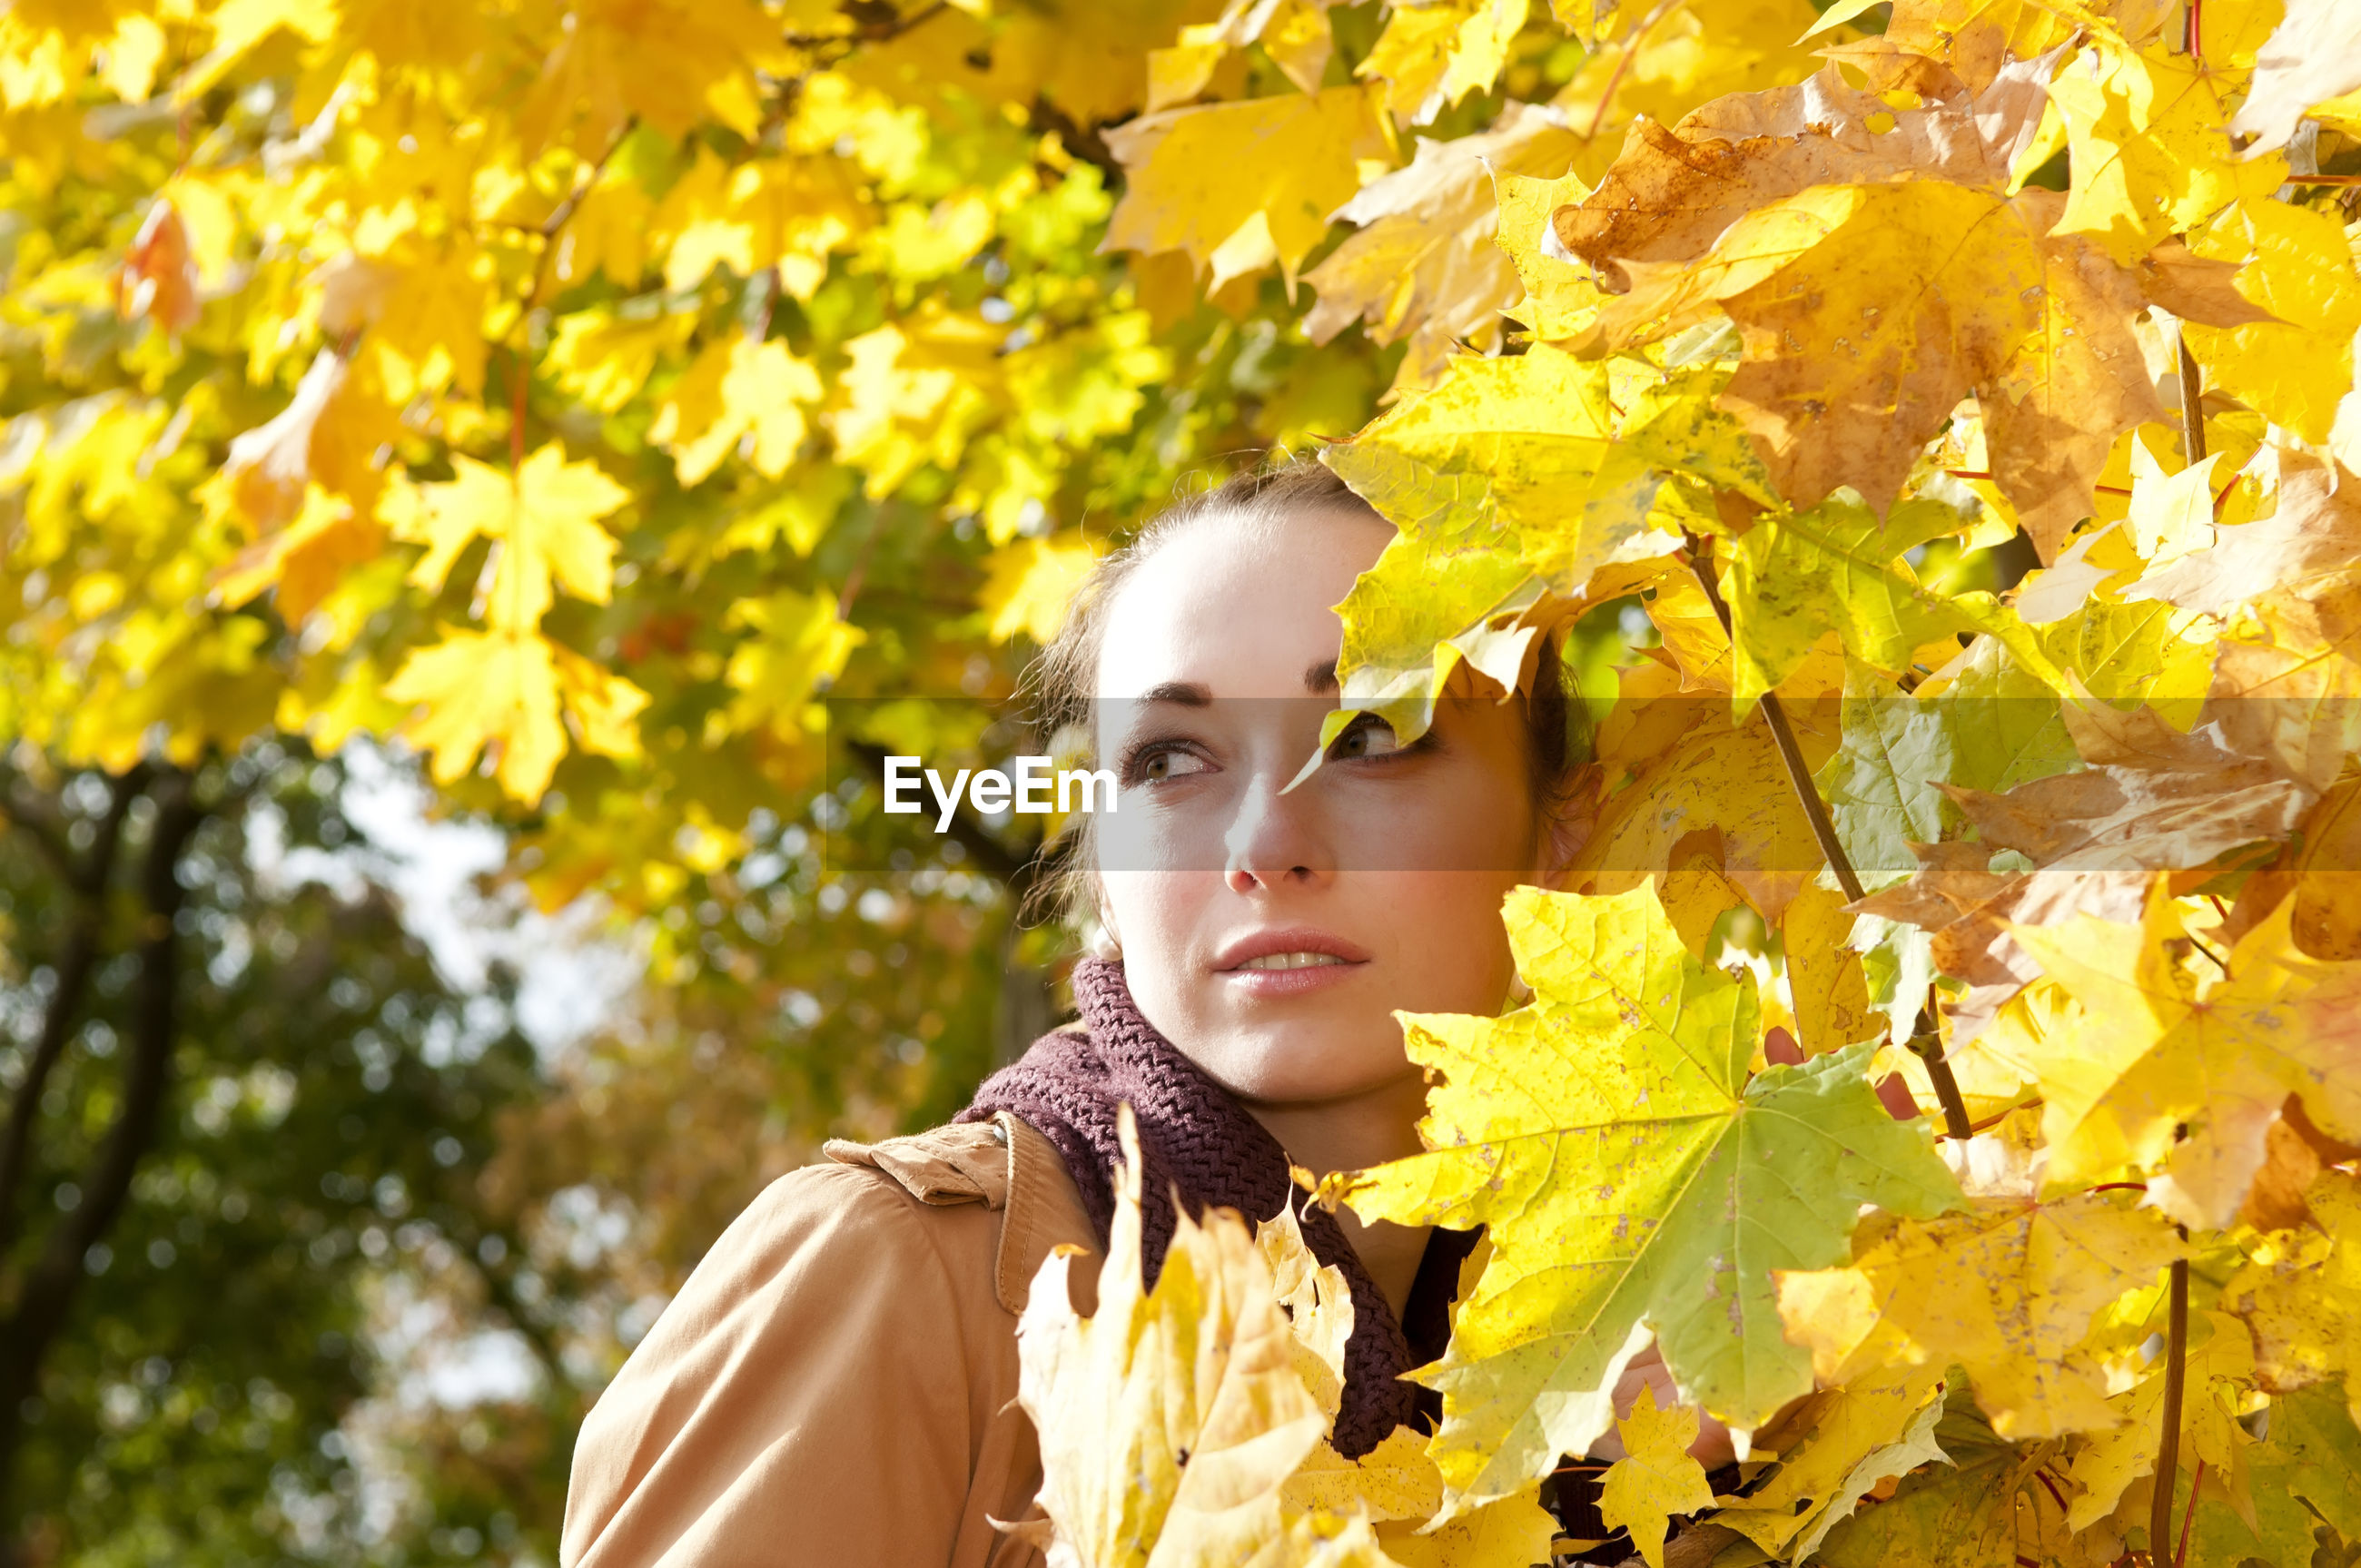 Thoughtful woman standing by trees in park during autumn